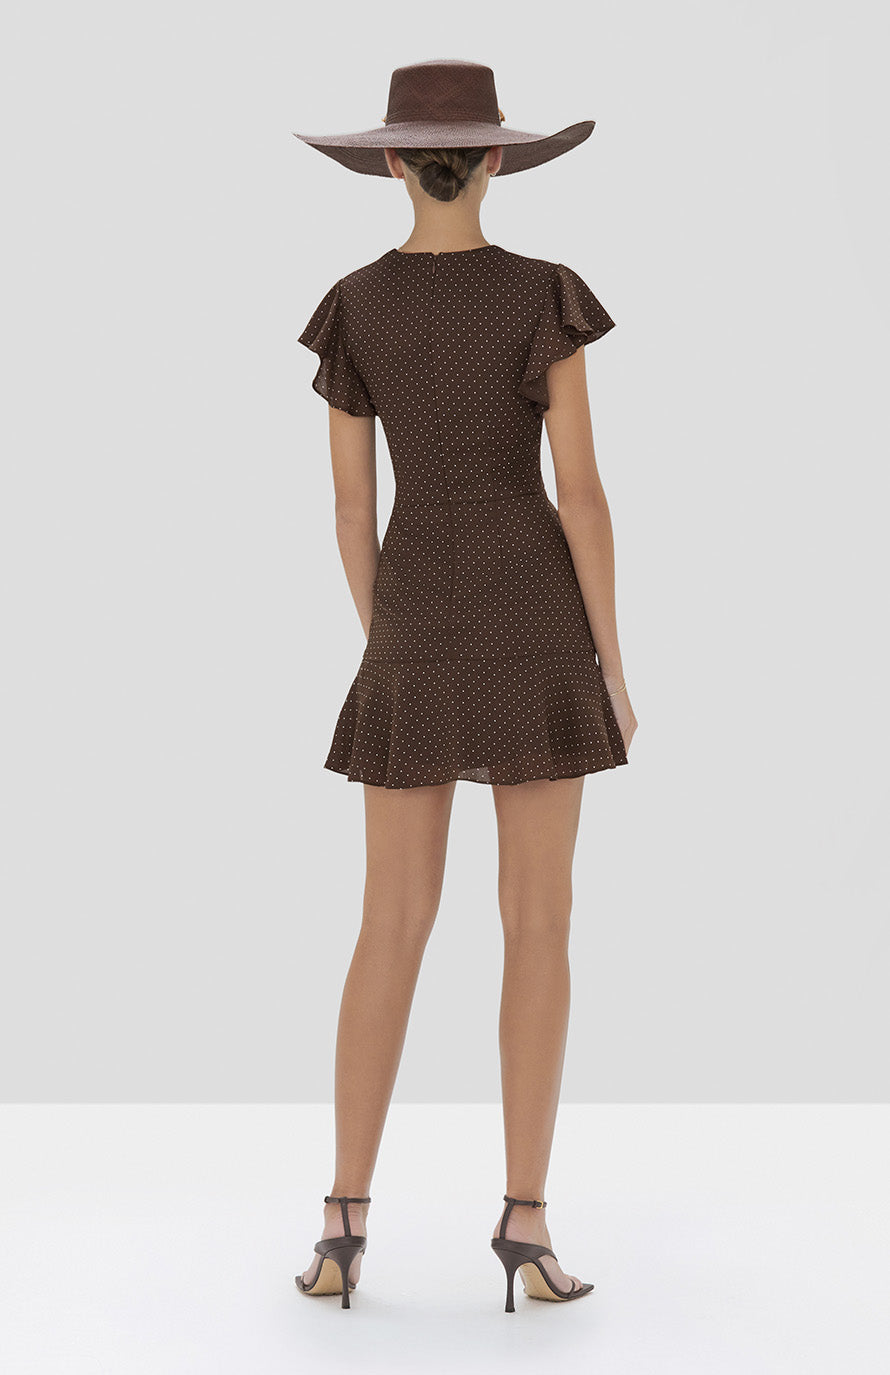 Alexis Benza Dress in Mocha Dot Linen from the Spring Summer 2020 Collection - Rear View